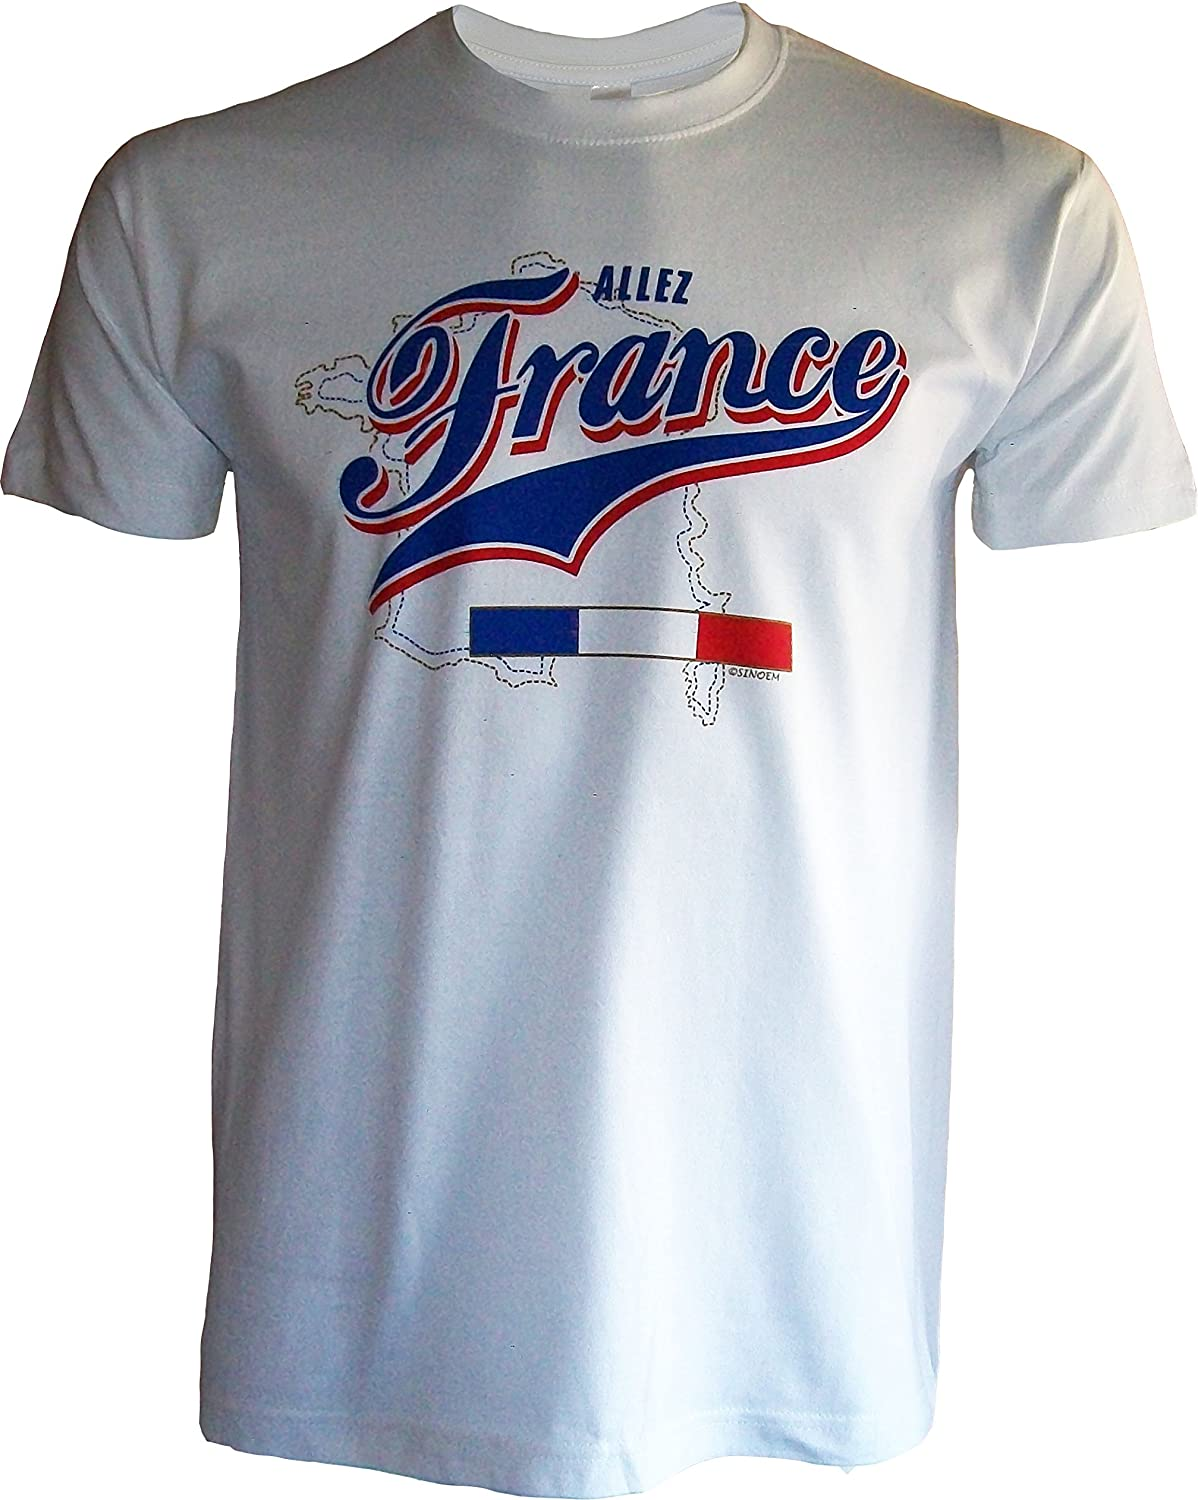 Taille Adulte Homme Collection Supporter A chacun son Pays T-Shirt France